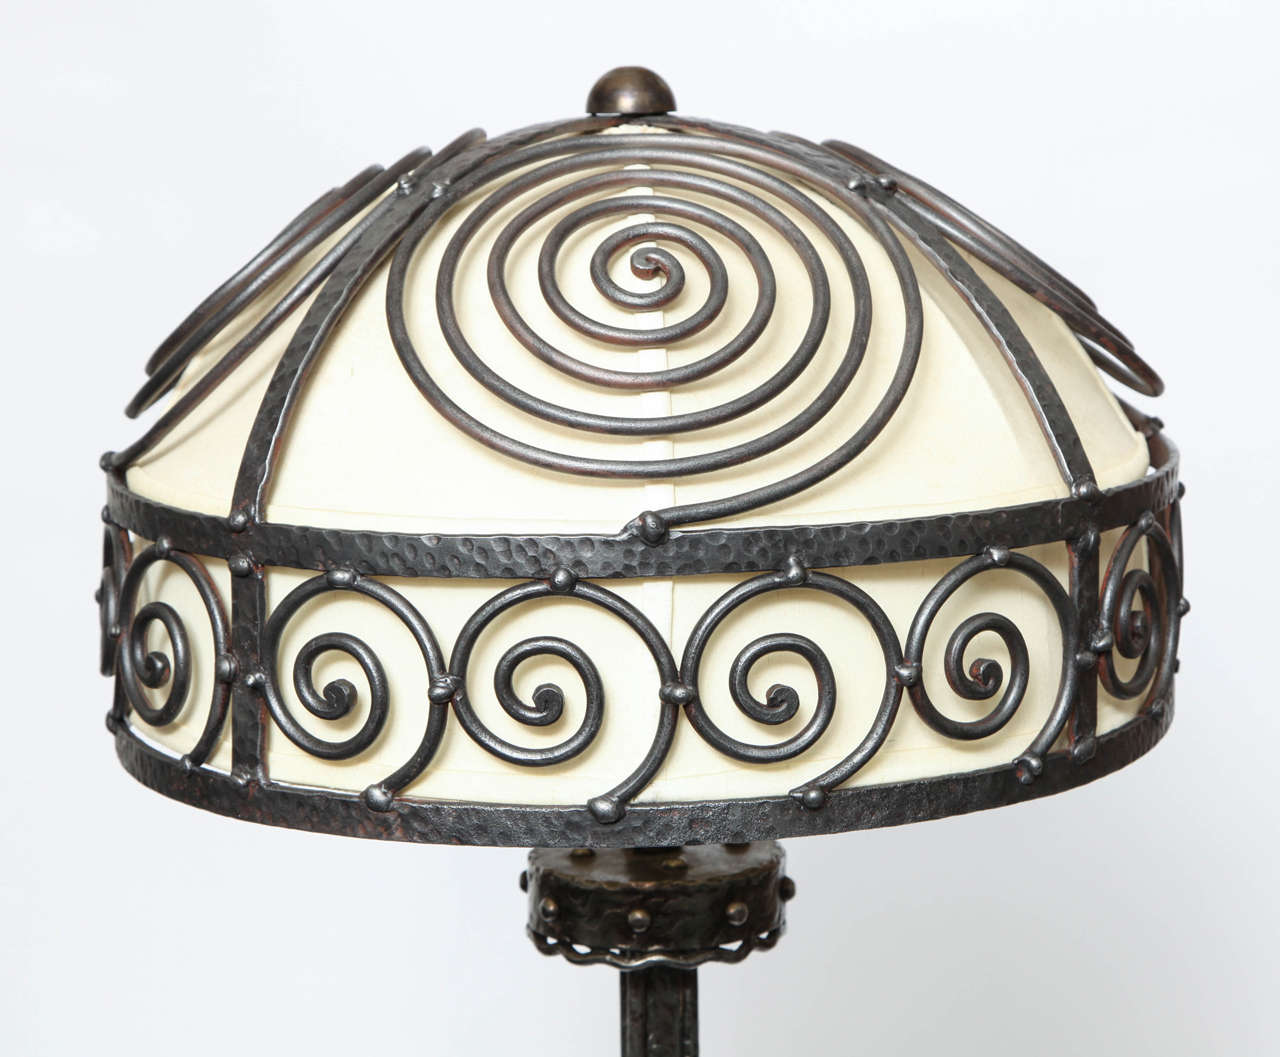 French Art Deco, Hand-Wrought Iron Floor Lamp In Excellent Condition For Sale In New York, NY